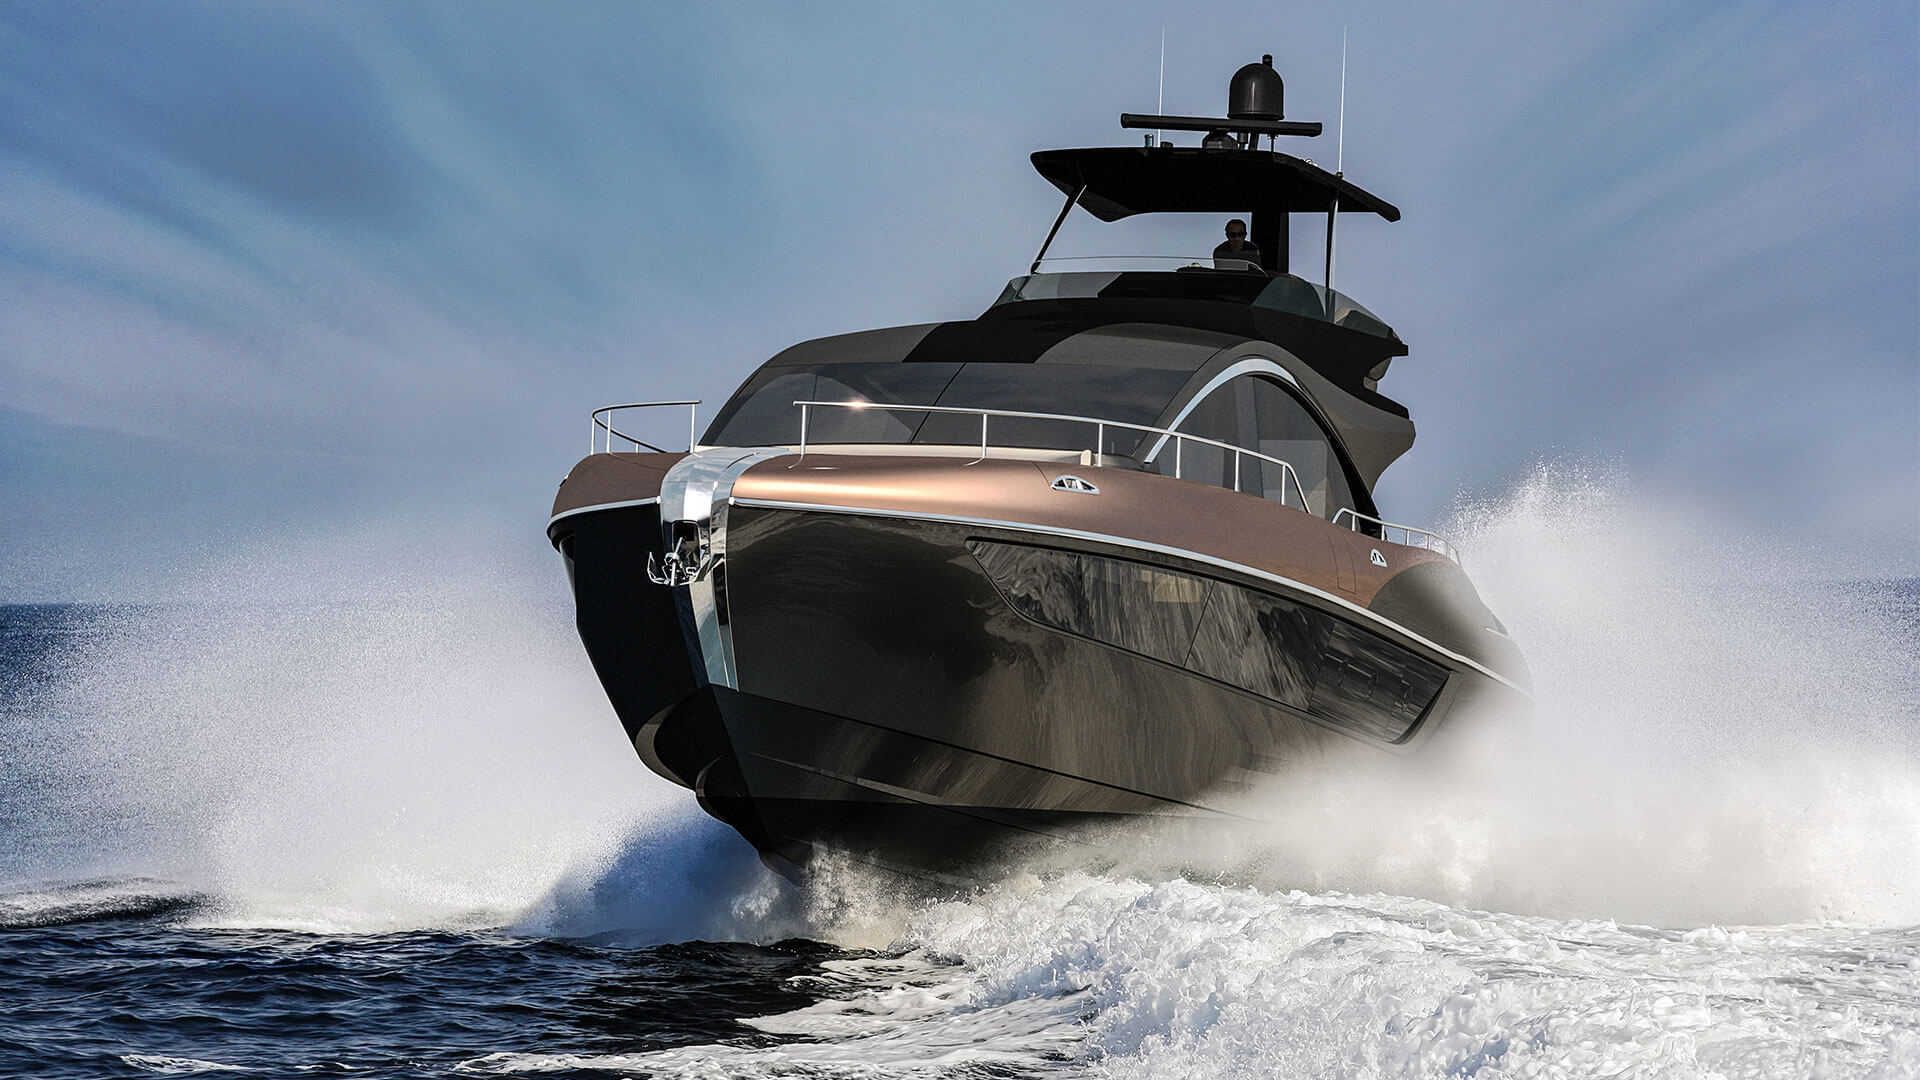 2019 lexus ly 650 luxury yacht hero